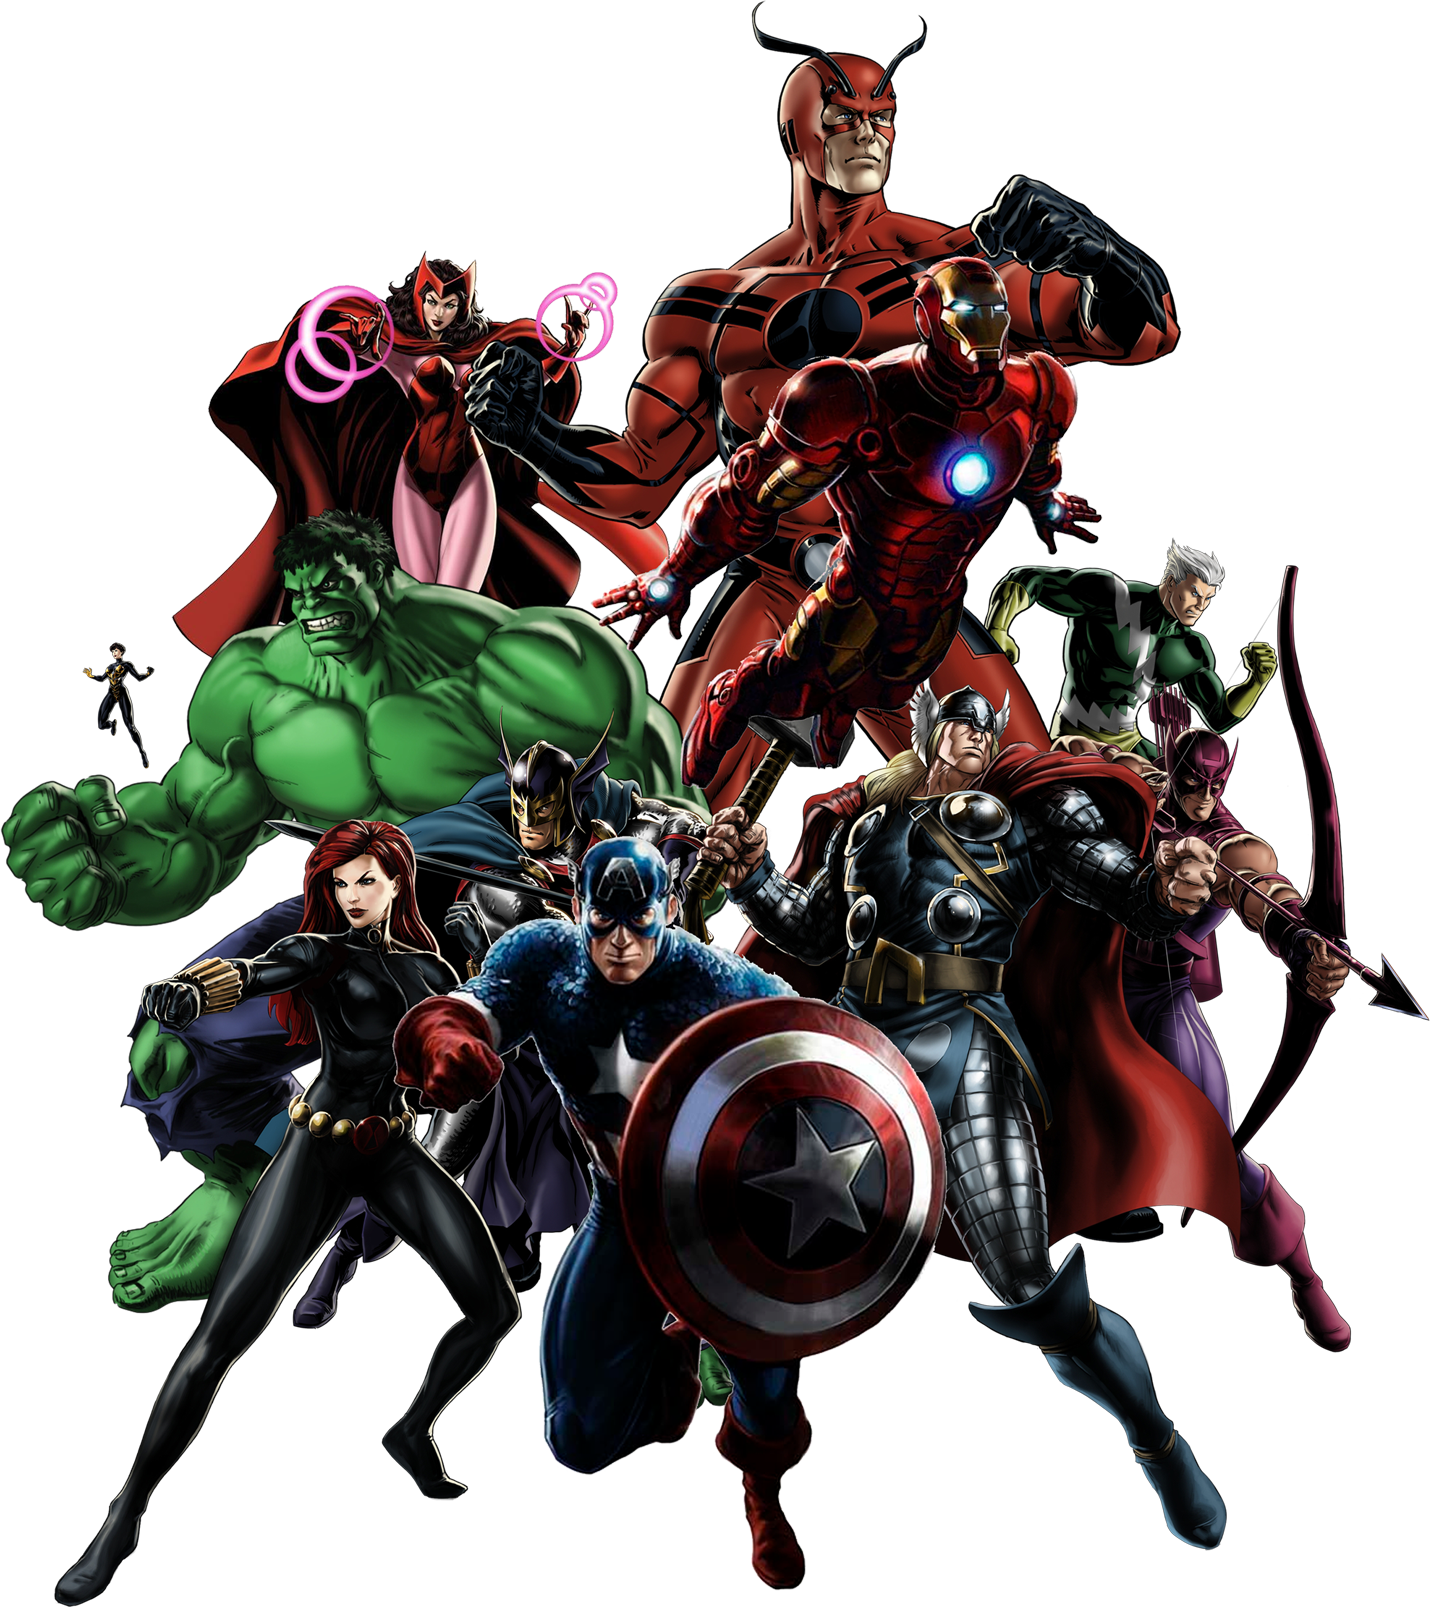 banner black and white download Png mart. Avengers clipart.